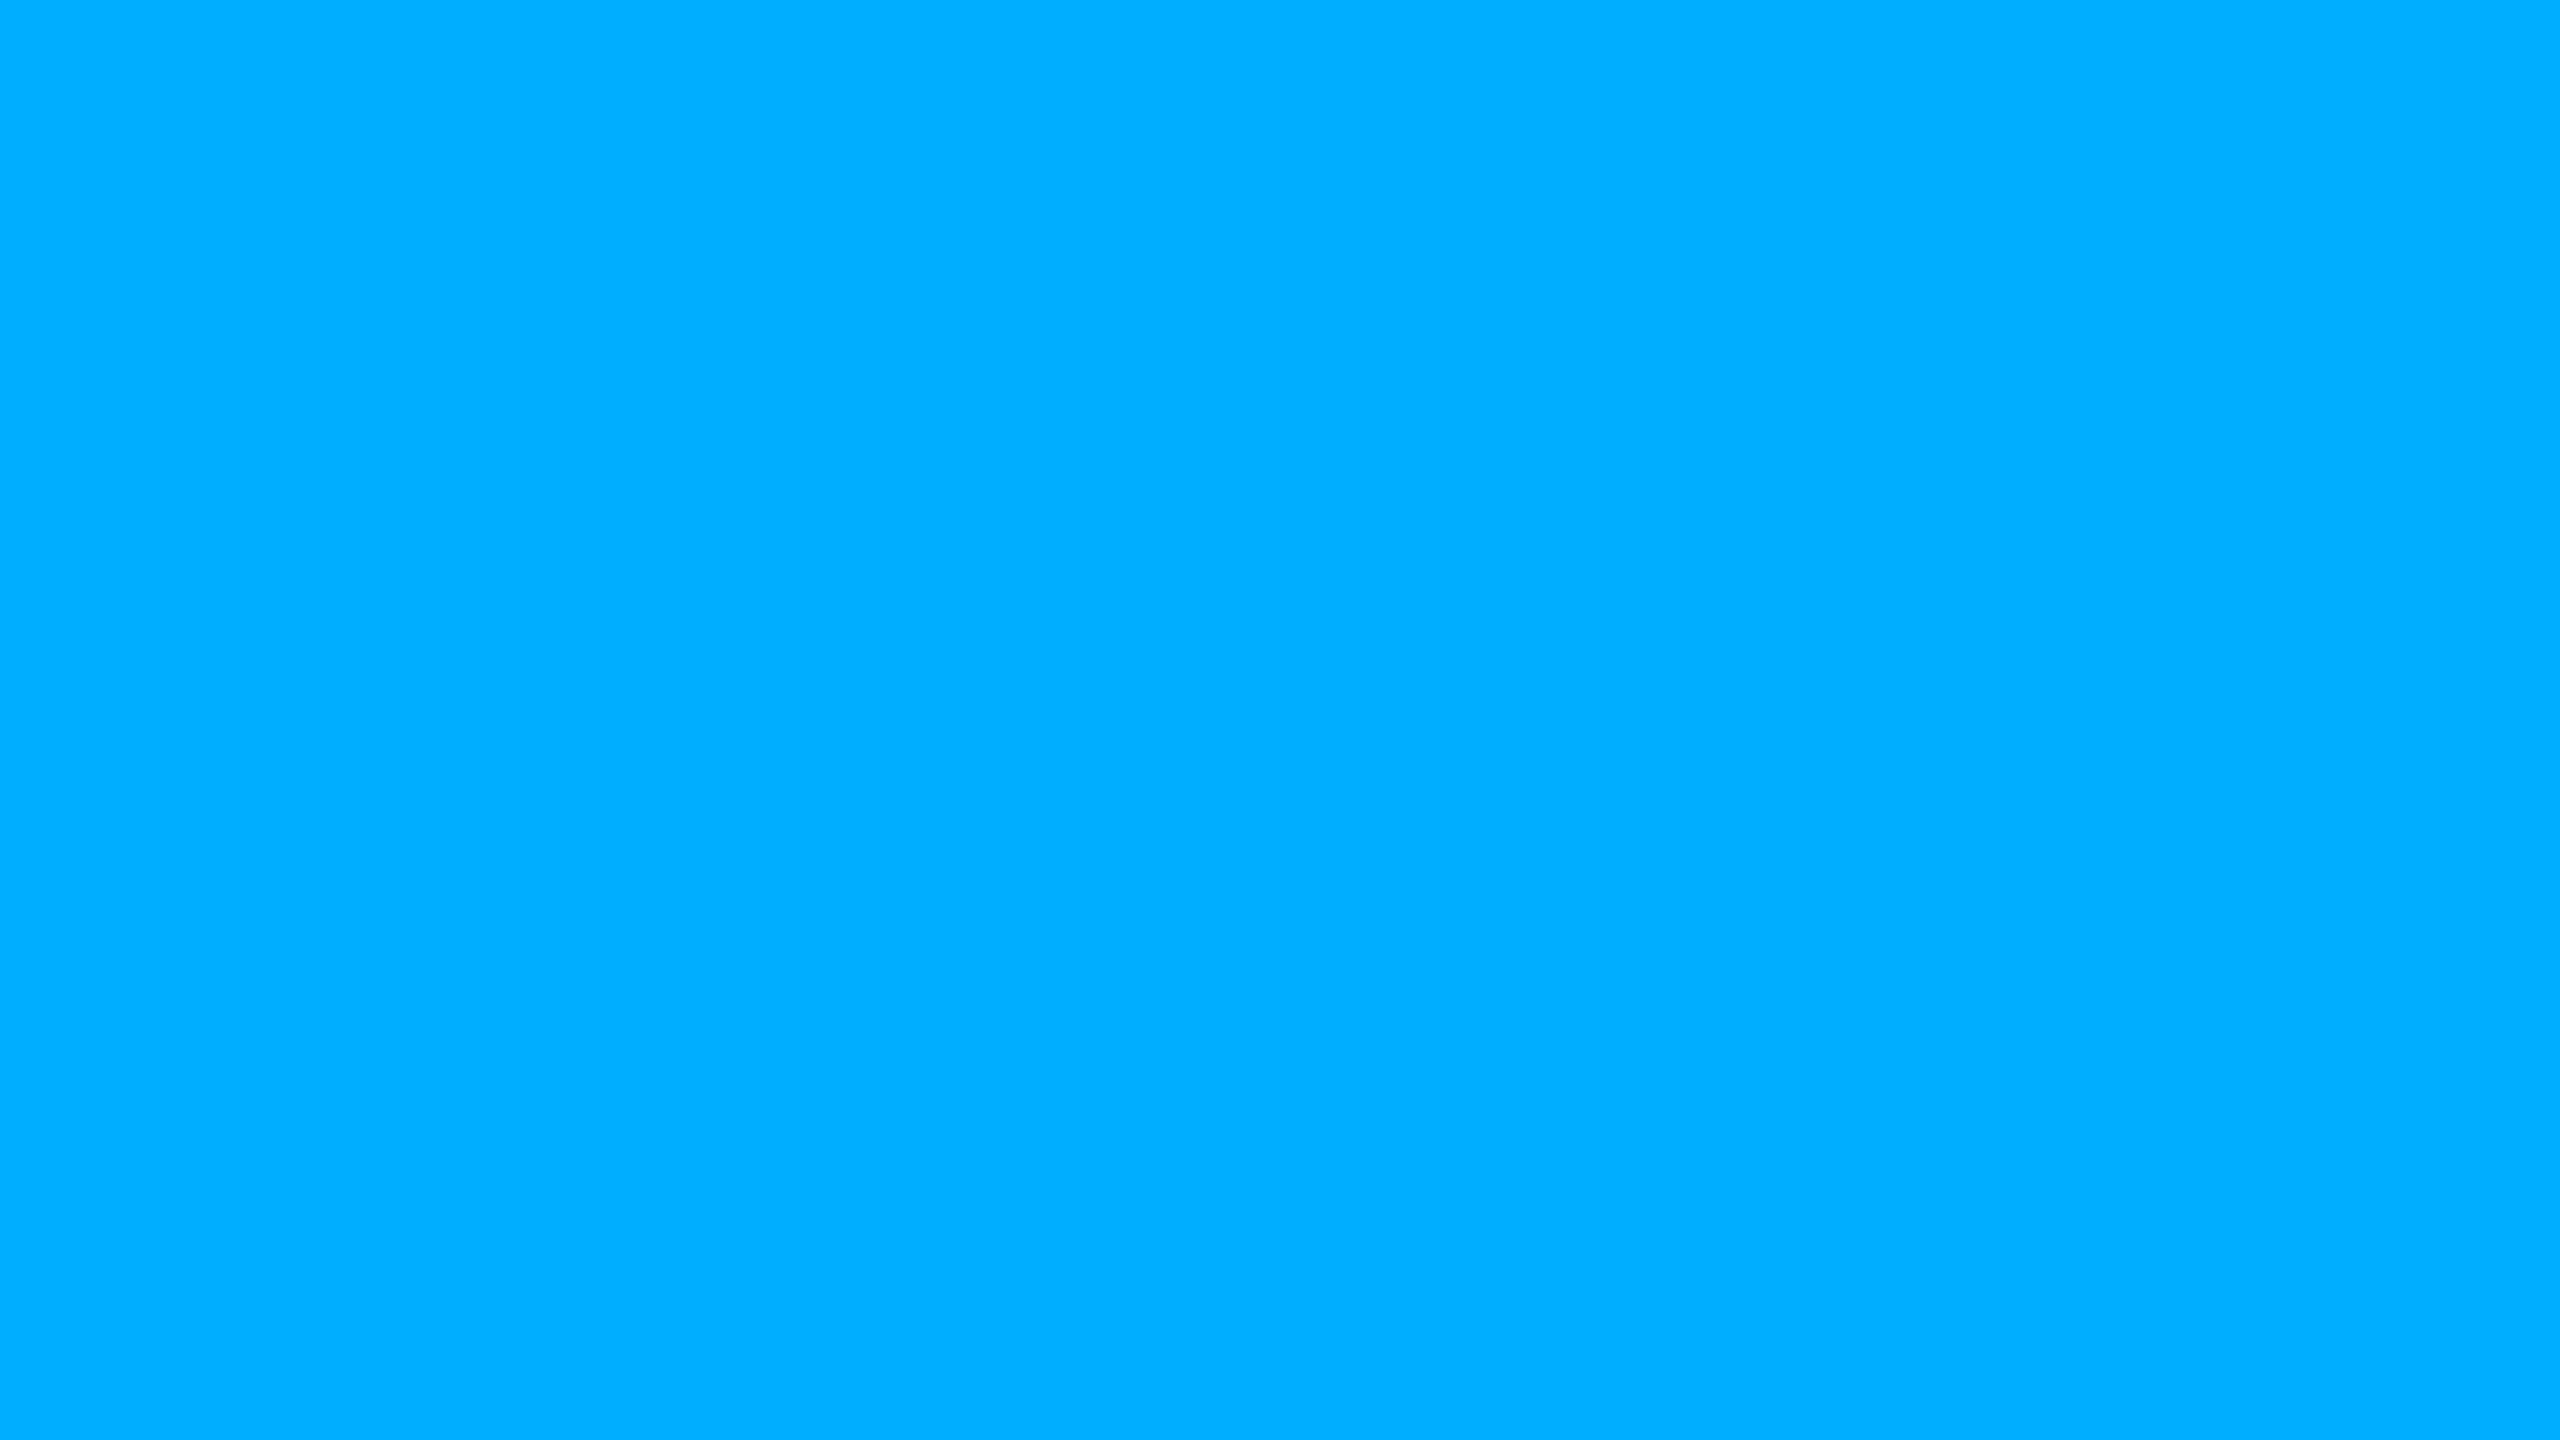 Image detail for Free BEAUTIFUL,BLUE COLOR Wallpaper